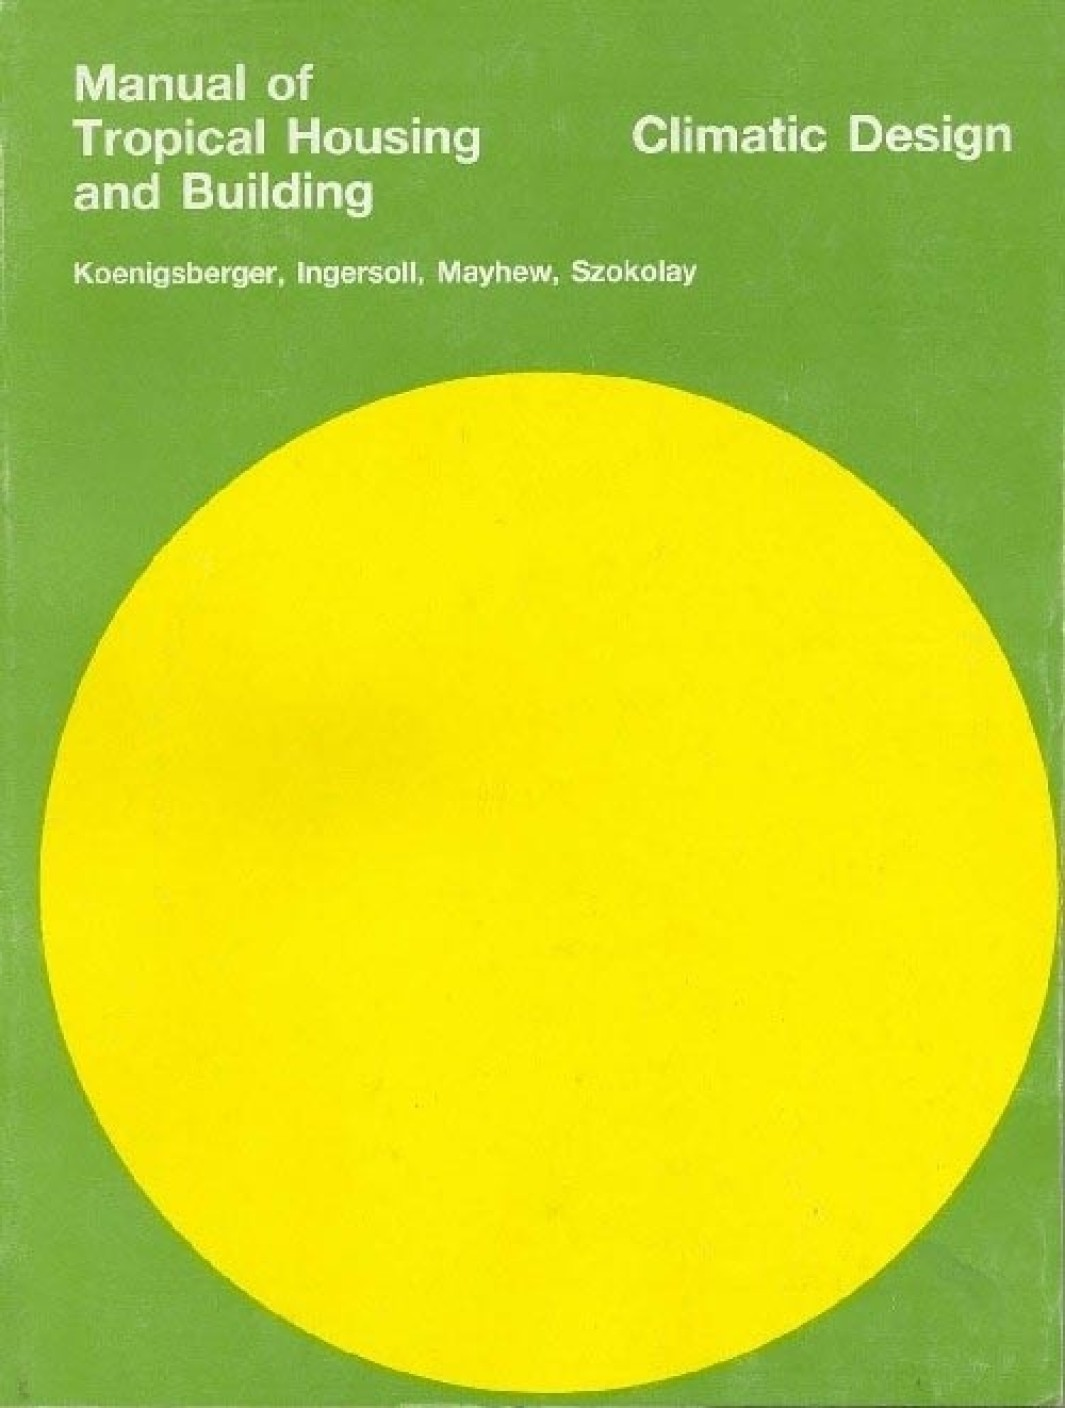 manual of tropical housing & building climatic design pb 01